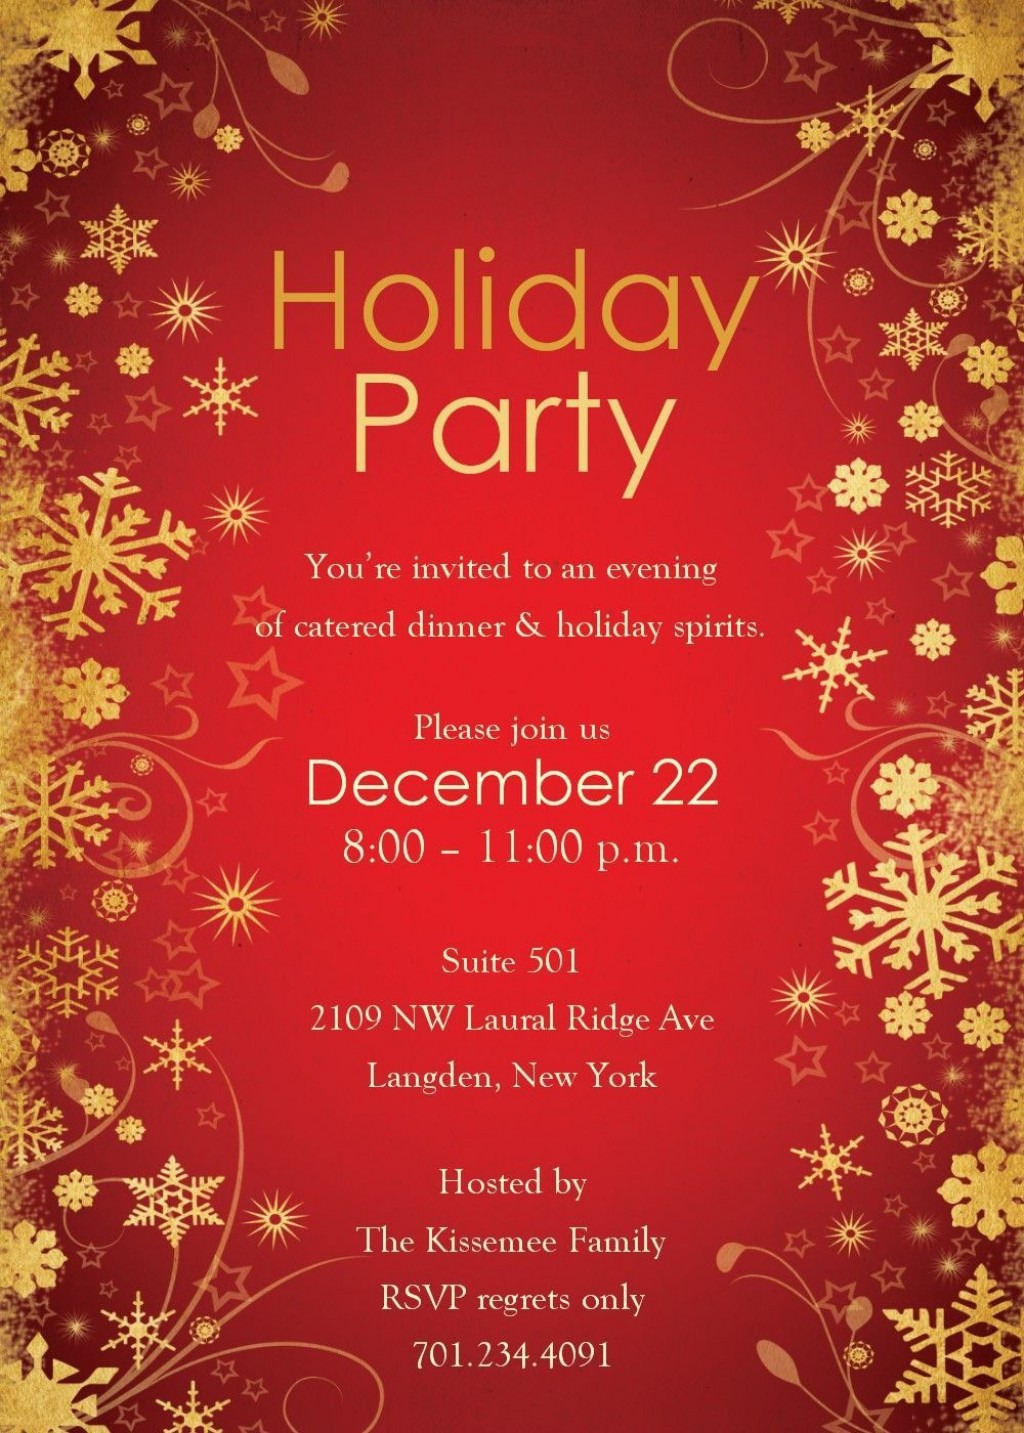 005 Shocking Free Holiday Party Invitation Template For Word Sample Large